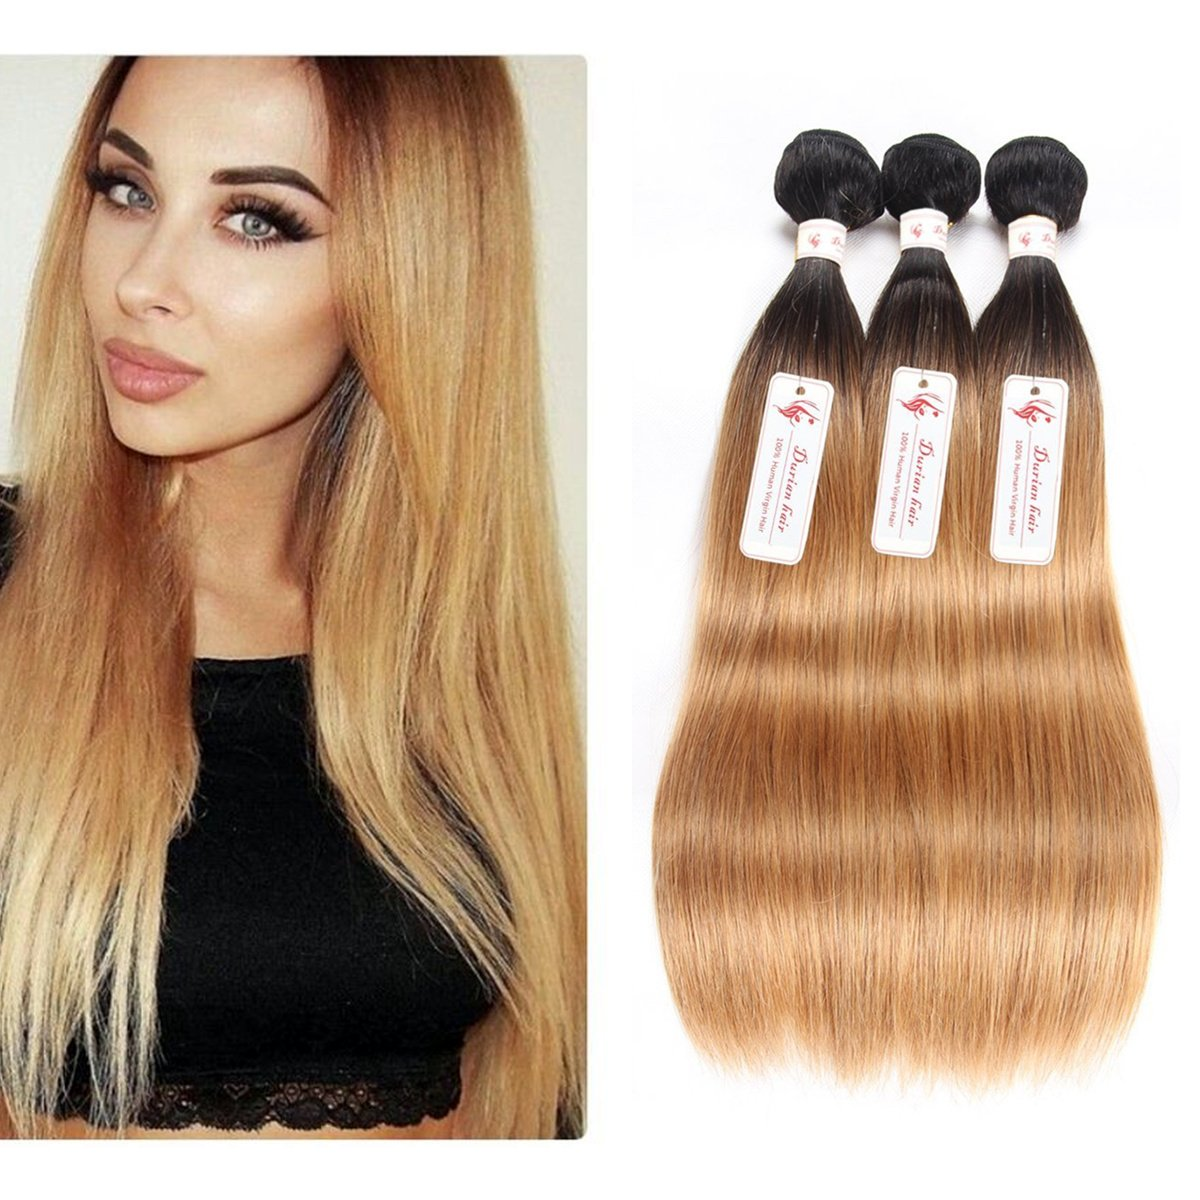 "Durian Hair Brazilian Straight Human Hair Ombre Color T1B-27 Straight Ombre Hair Weave 3 Bundles 300g (10"" 12"" 12"") inch"